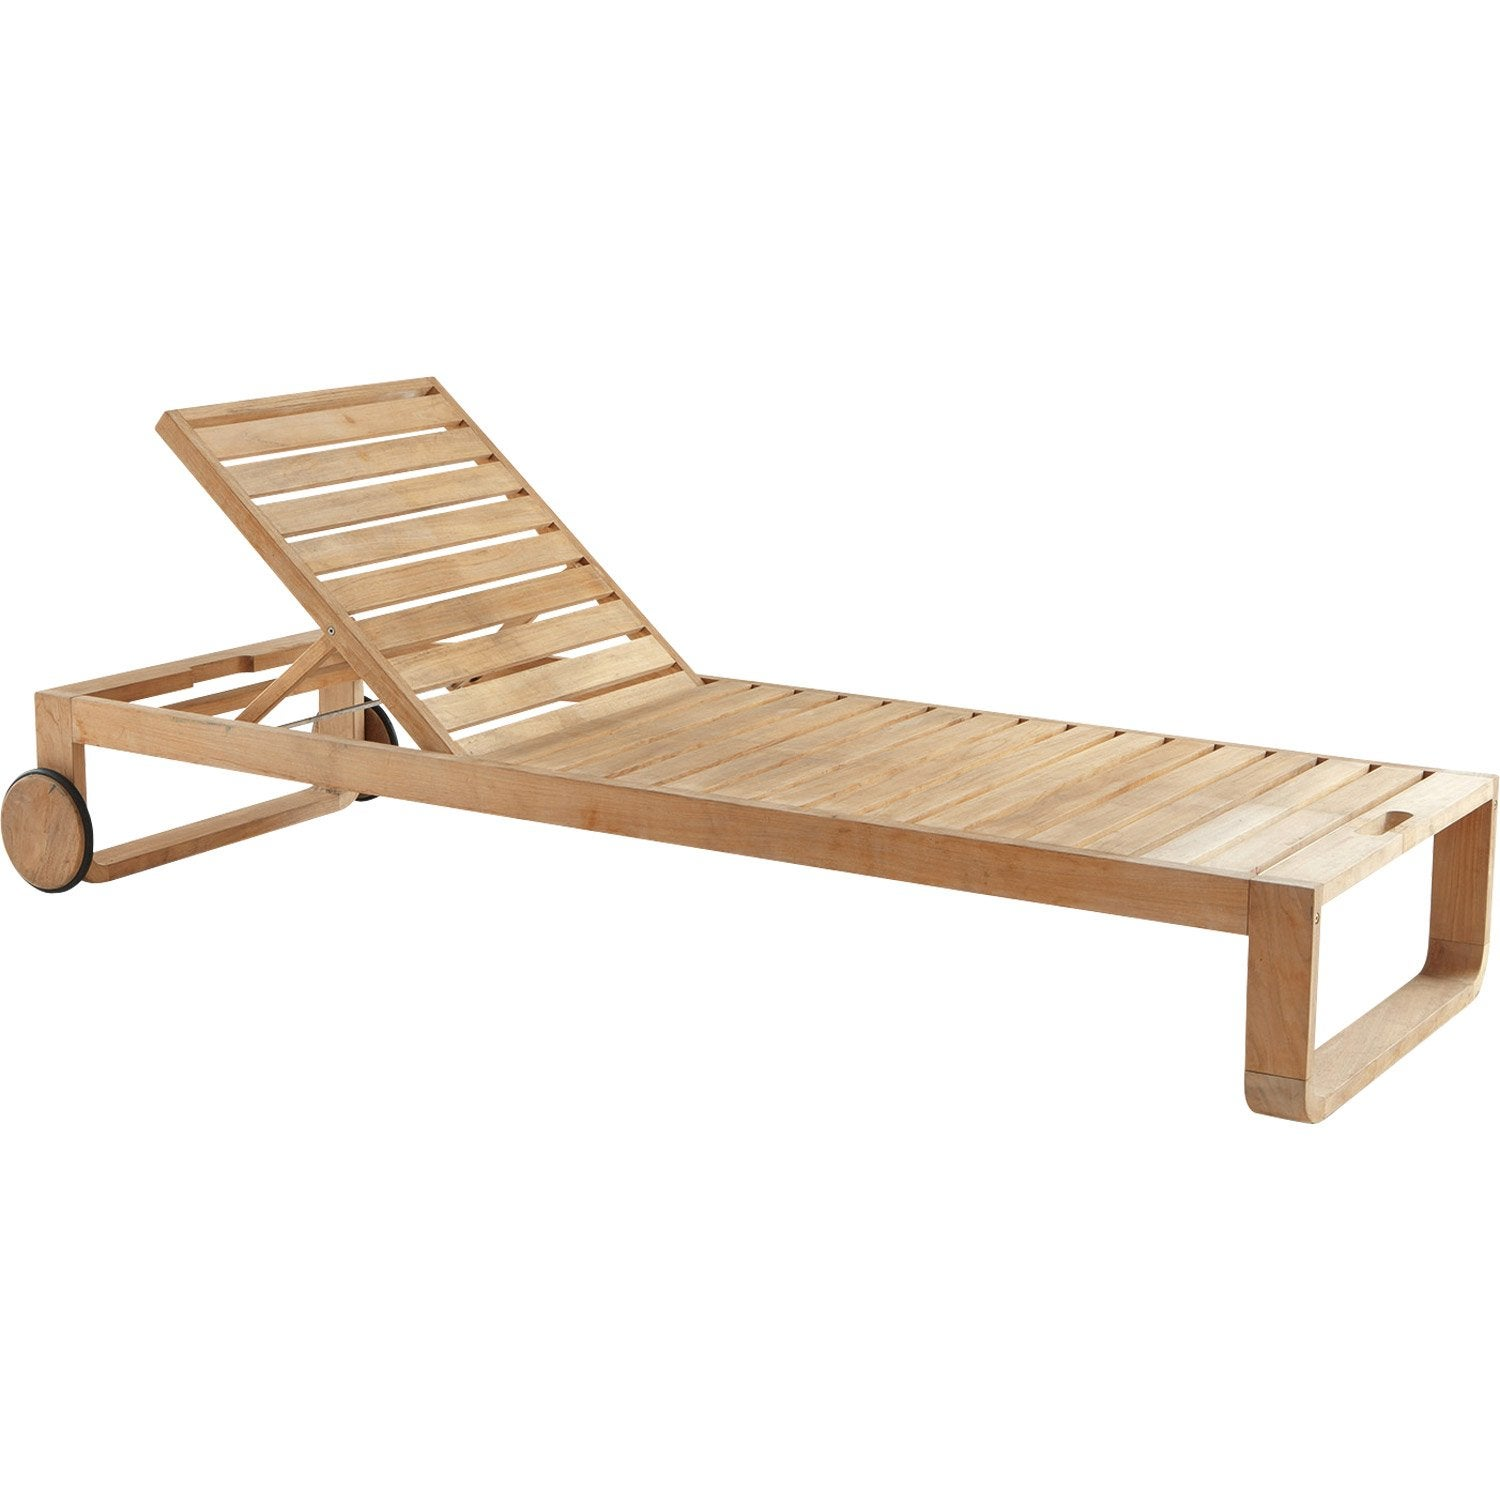 Bain de soleil de jardin en bois resort naturel leroy merlin for Chaise longue bain de soleil pliable